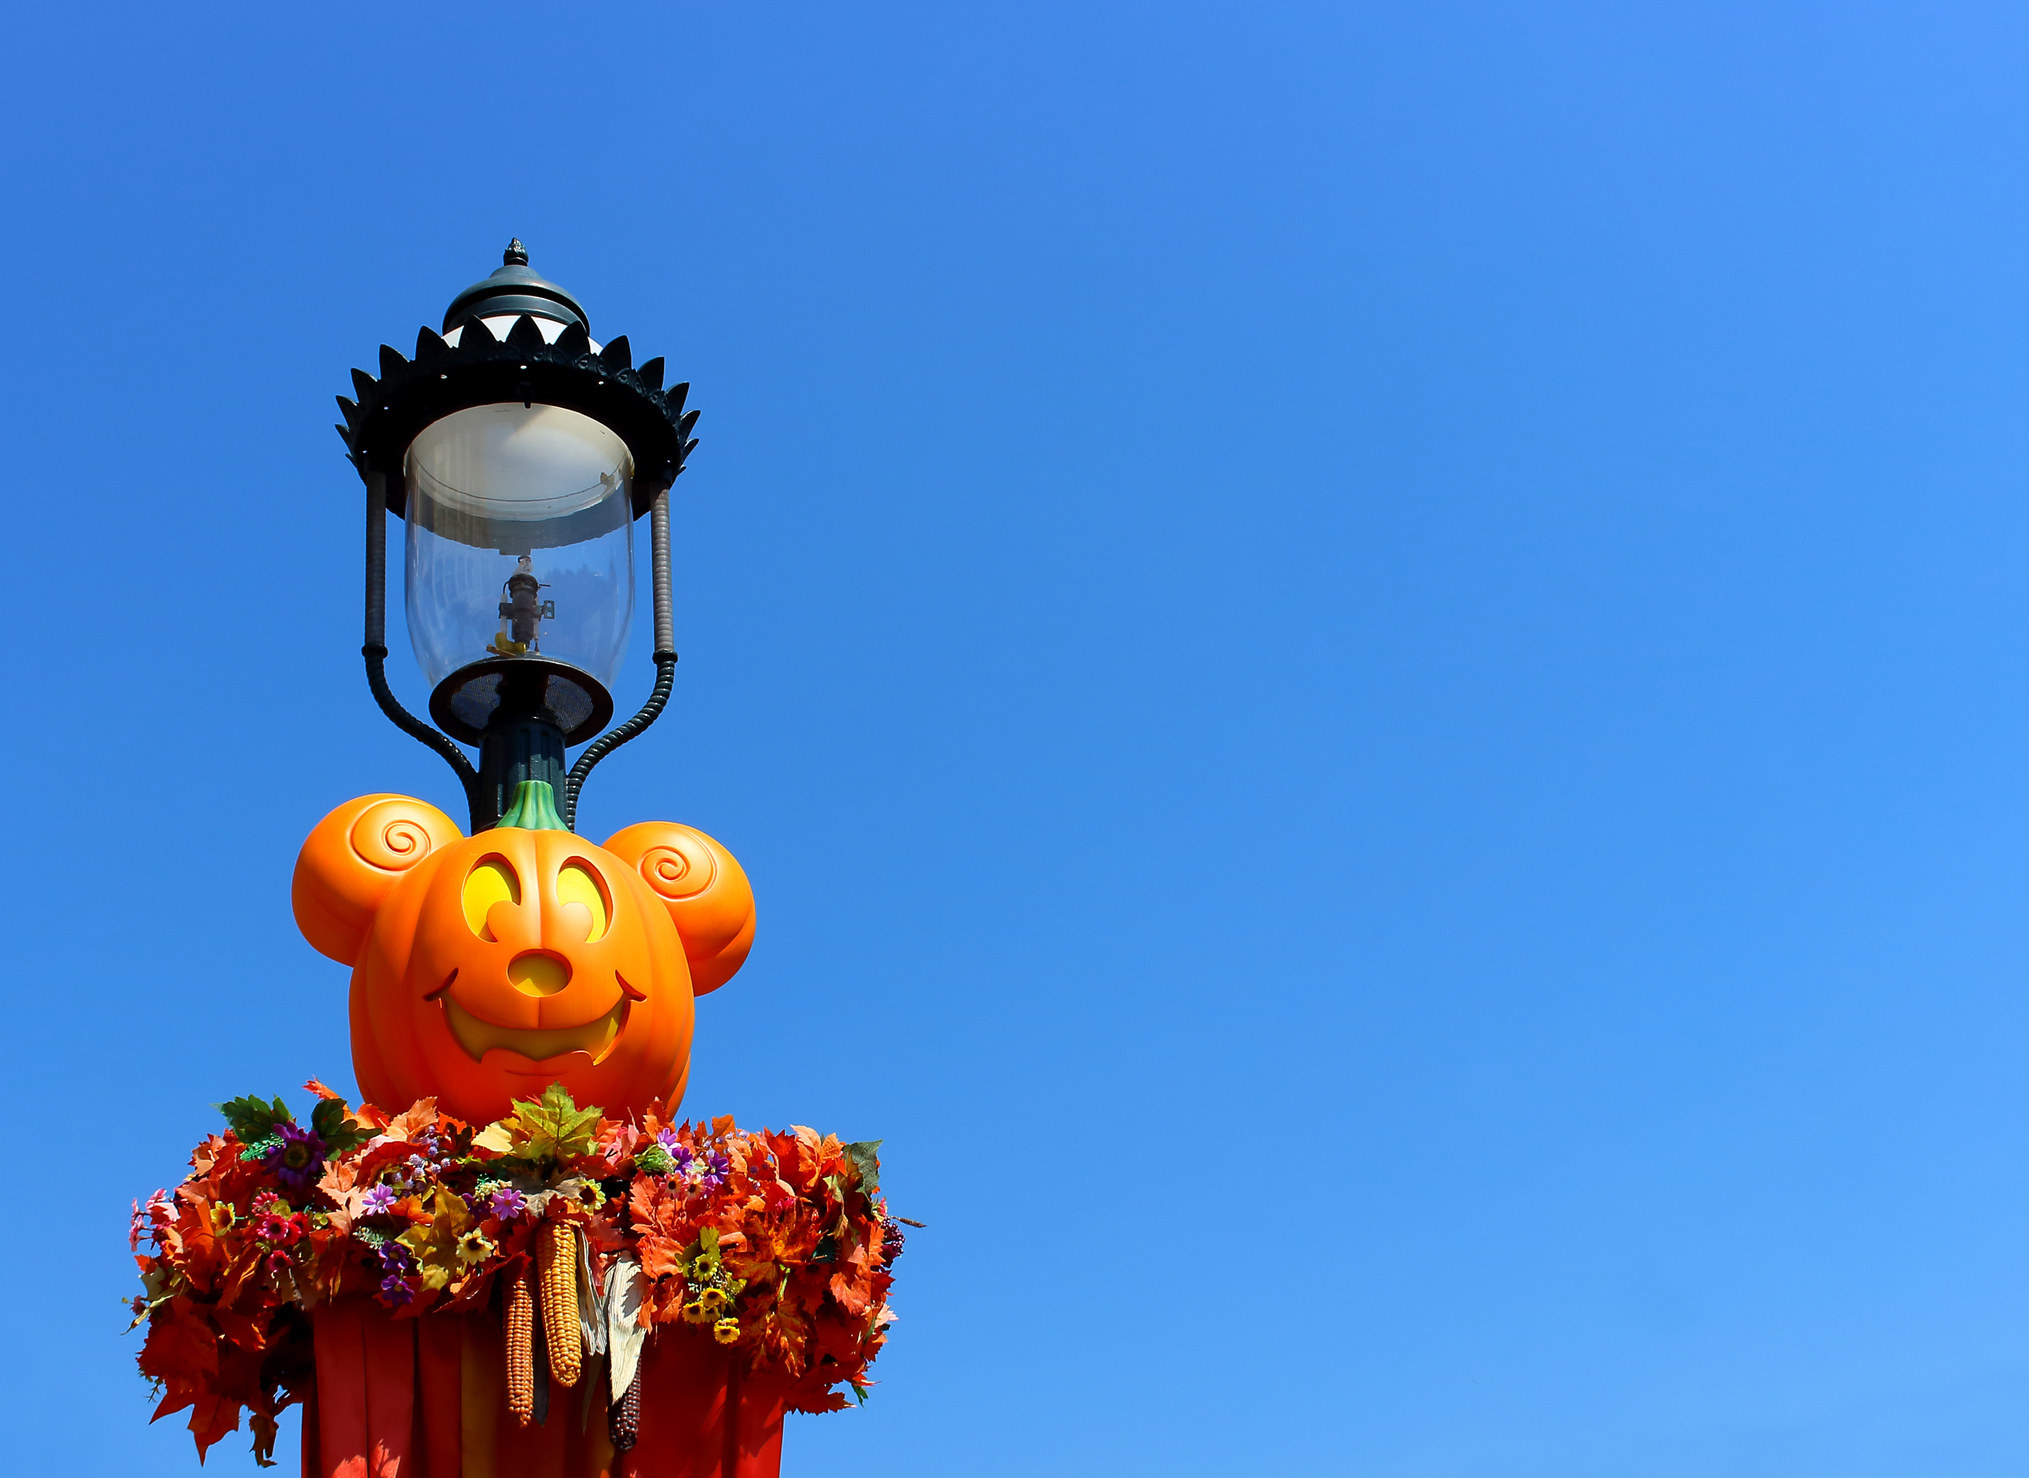 Image of pumpkin shaped as Disney's mickey mouse with a light on-top of the head of the pumpkin